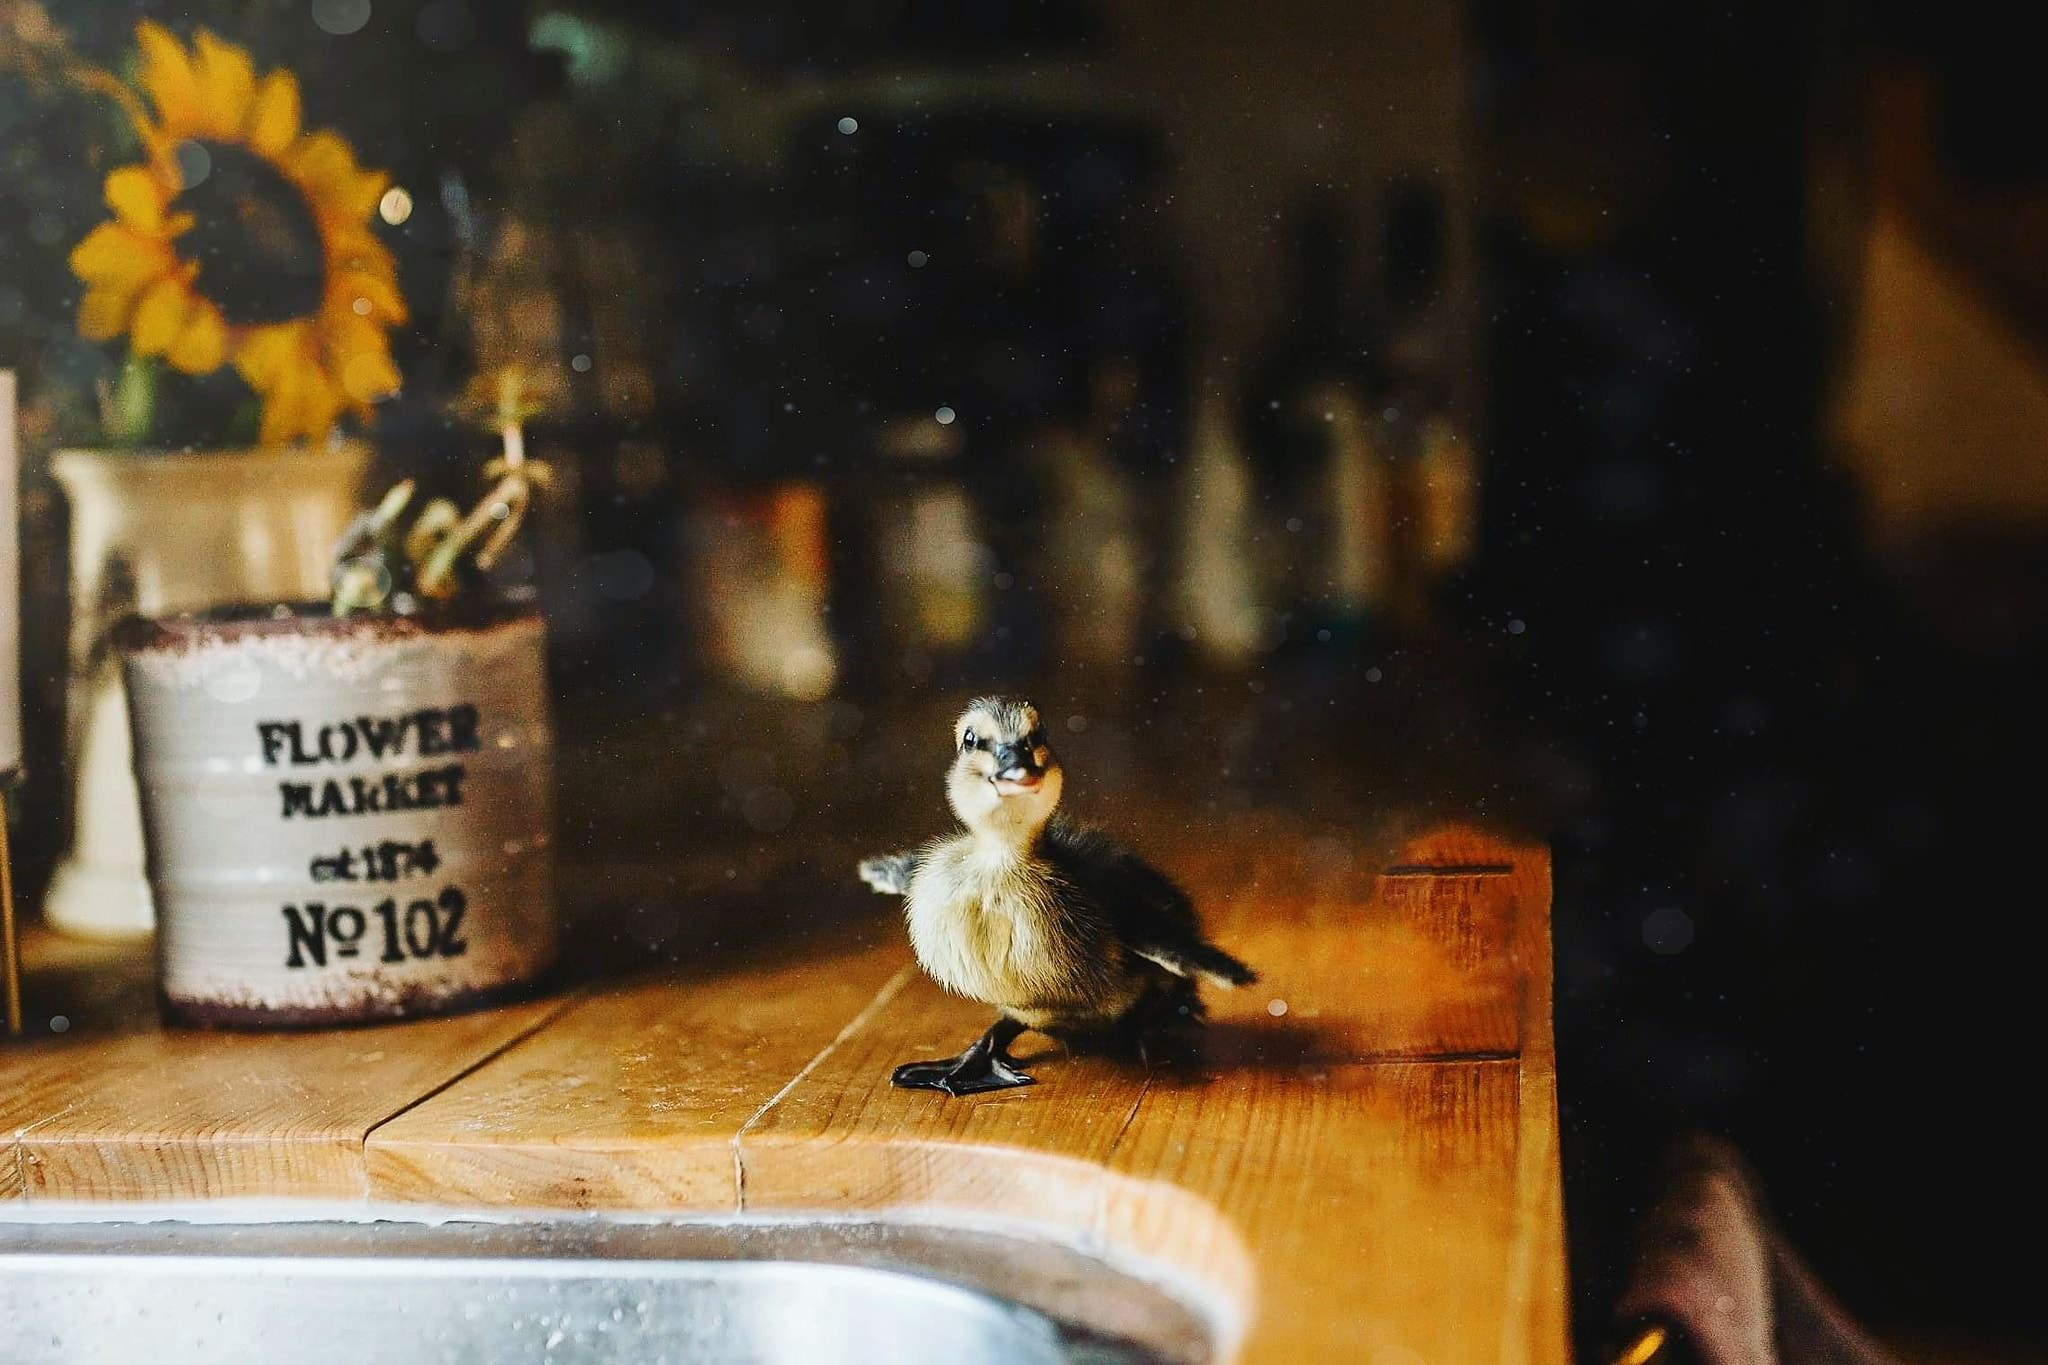 a small duck stands next to a sink in the kitchen